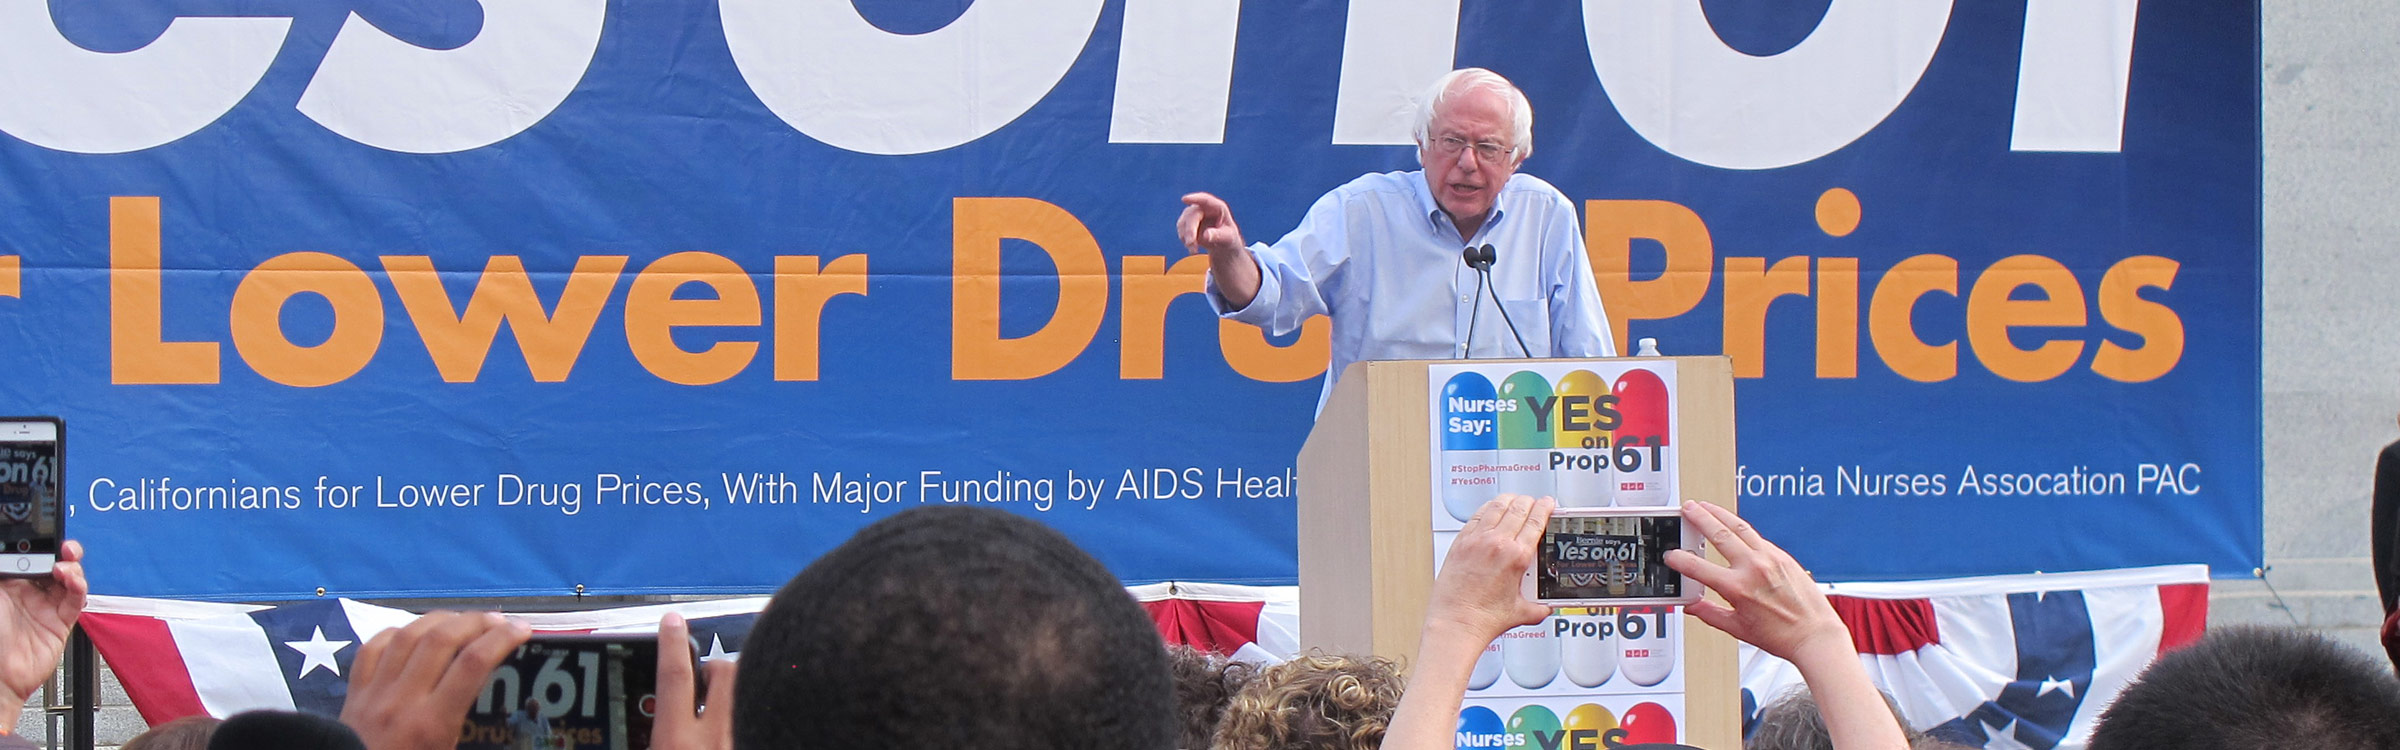 Sanders calls for lower drug prices